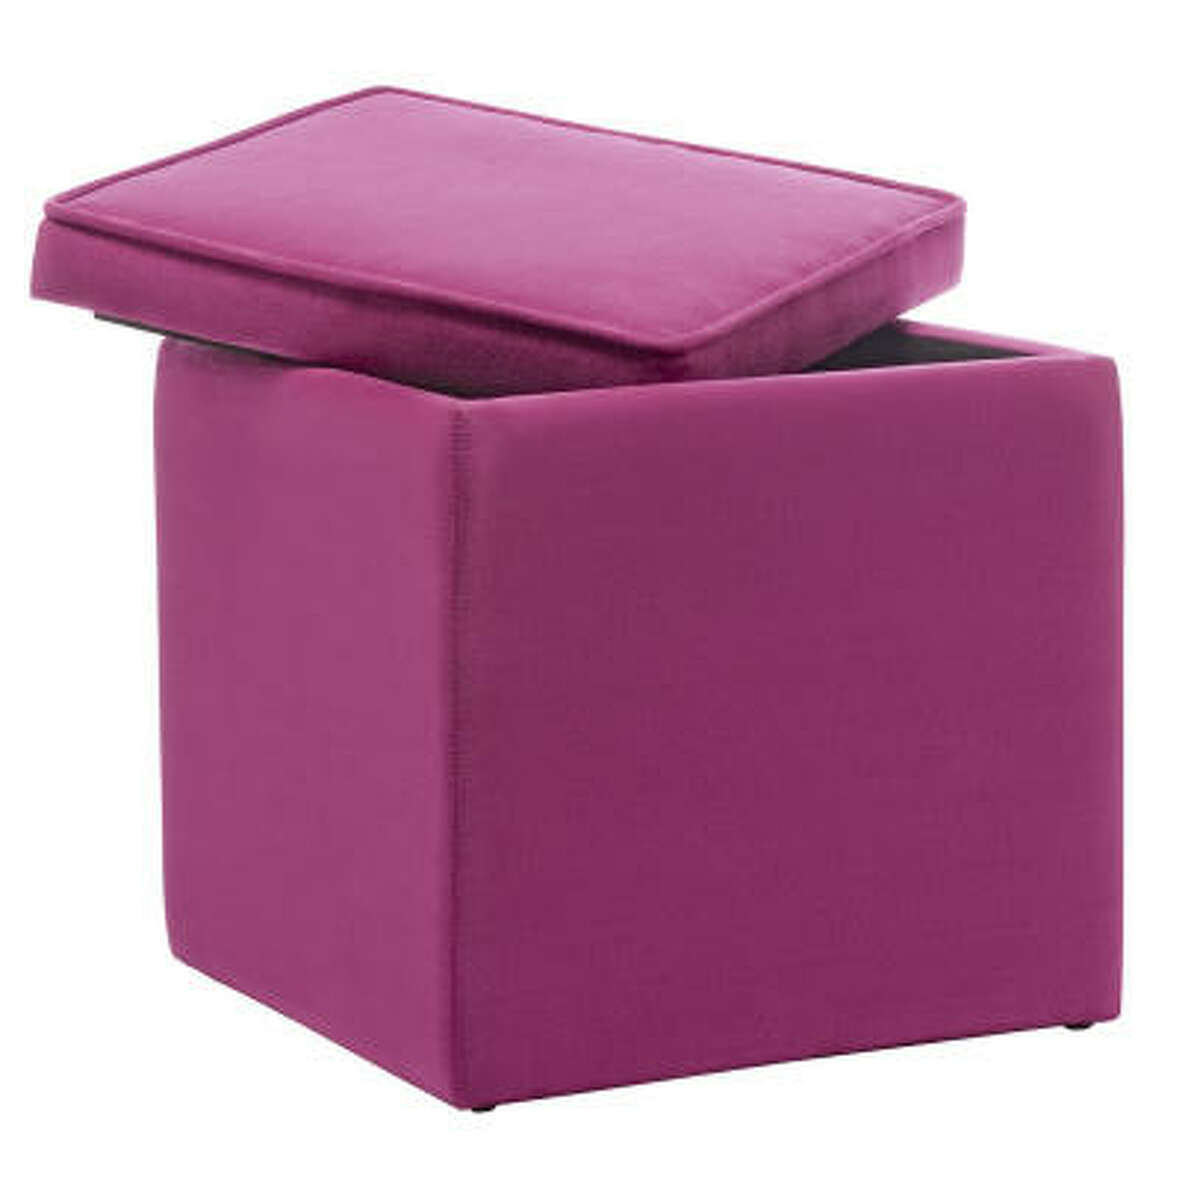 Double your pleasure with a splash of fuchsia that multitasks as seating and storage. $19.99, Target.